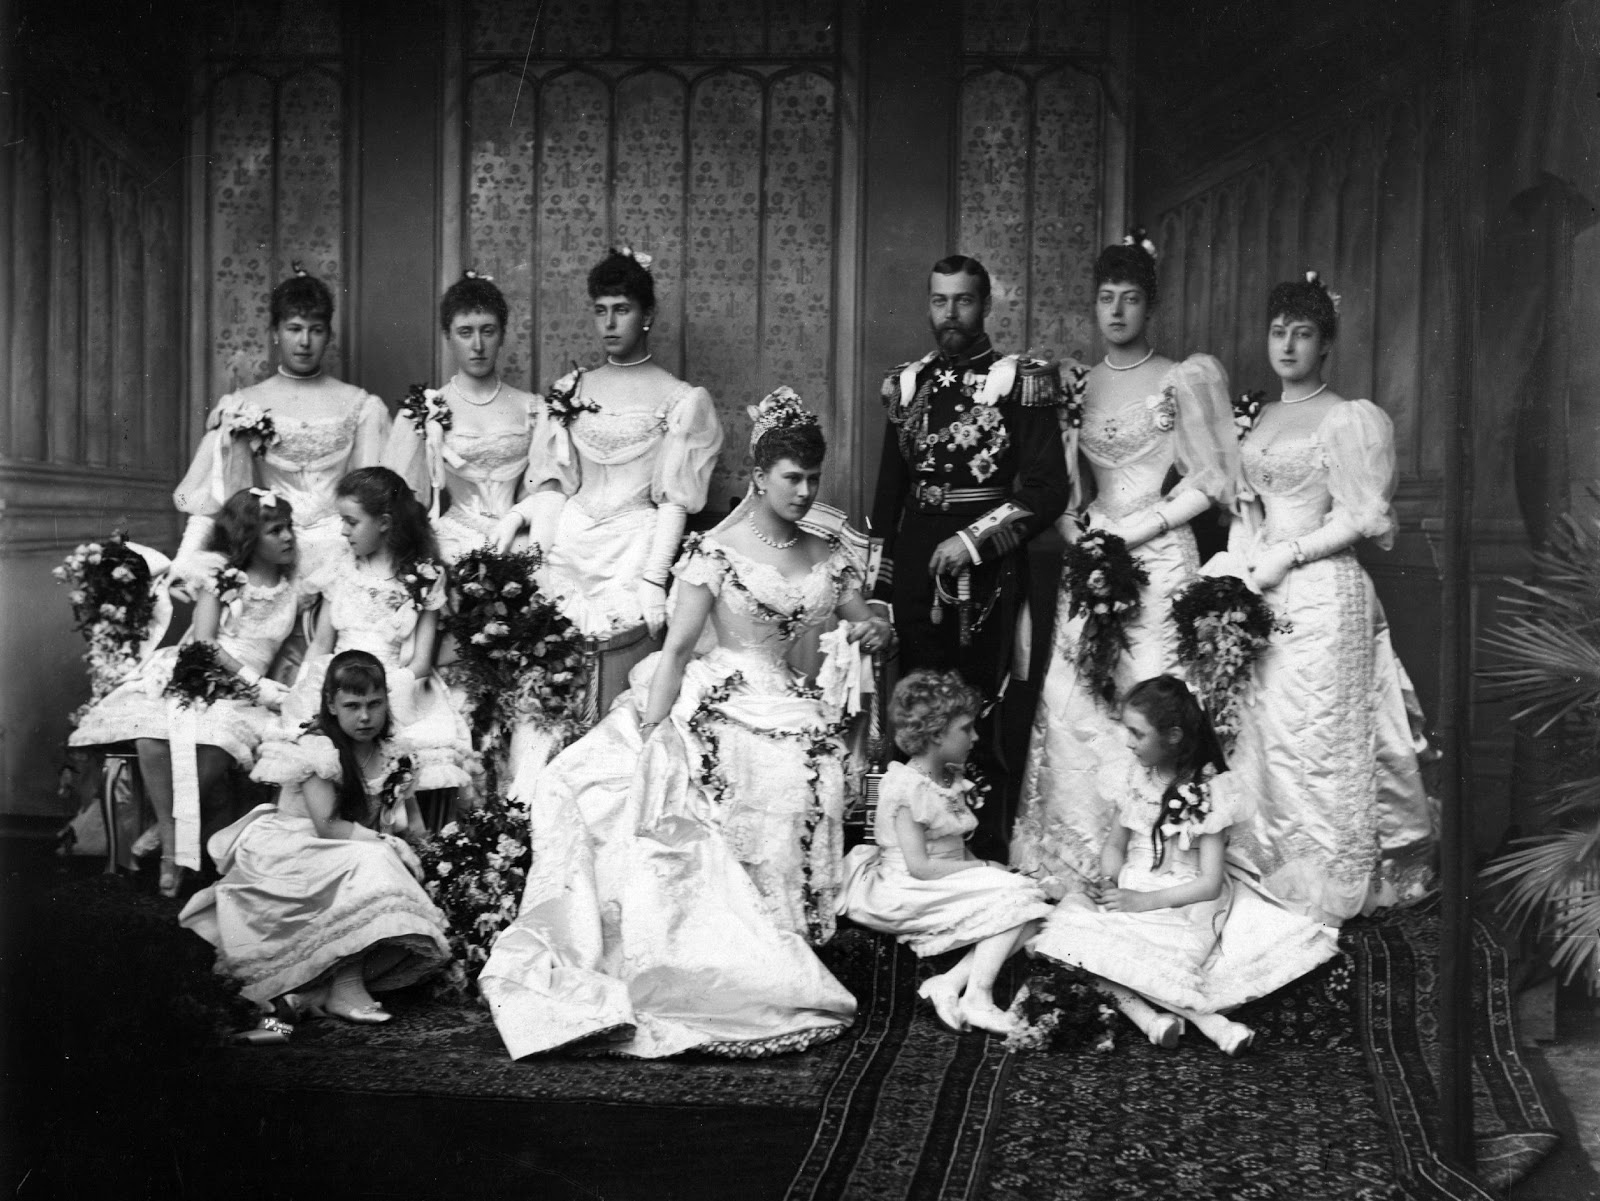 Princess Victoria Mary of Teck Queen Consort Mary of the